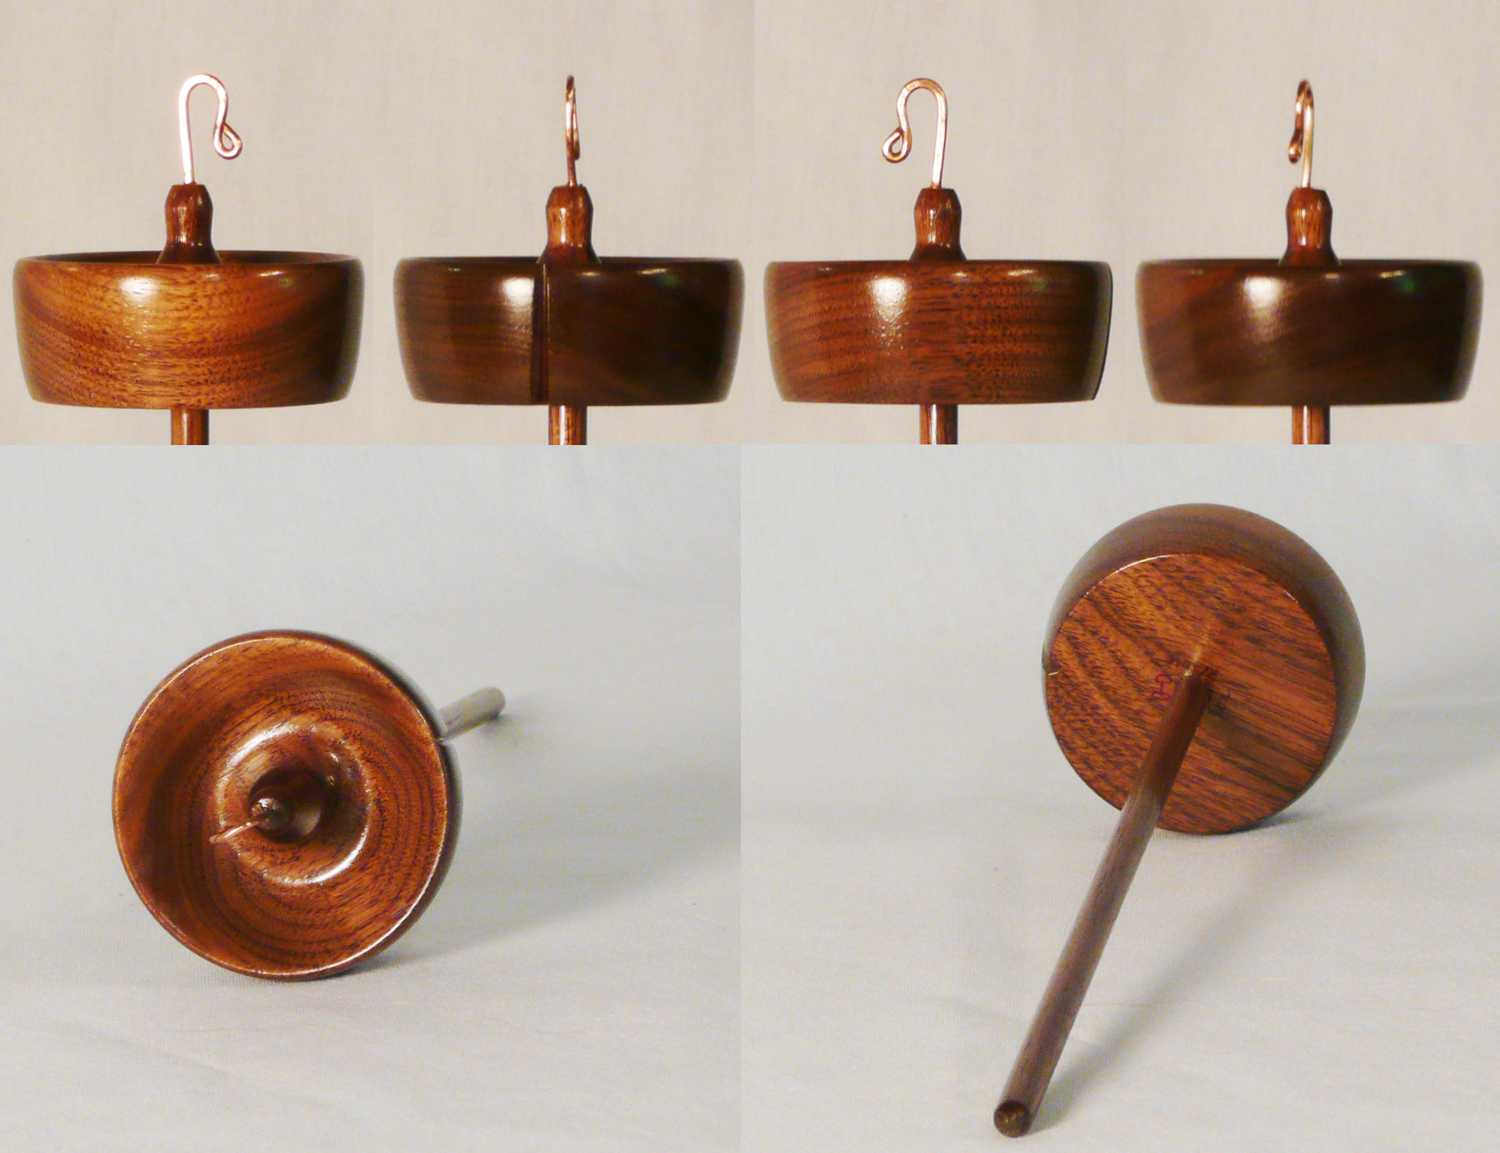 Tool for making yarn in walnut a high whorl drop spindle hand turned by Cynthia D. Haney.  Signed number 140 weighing 1 oz.